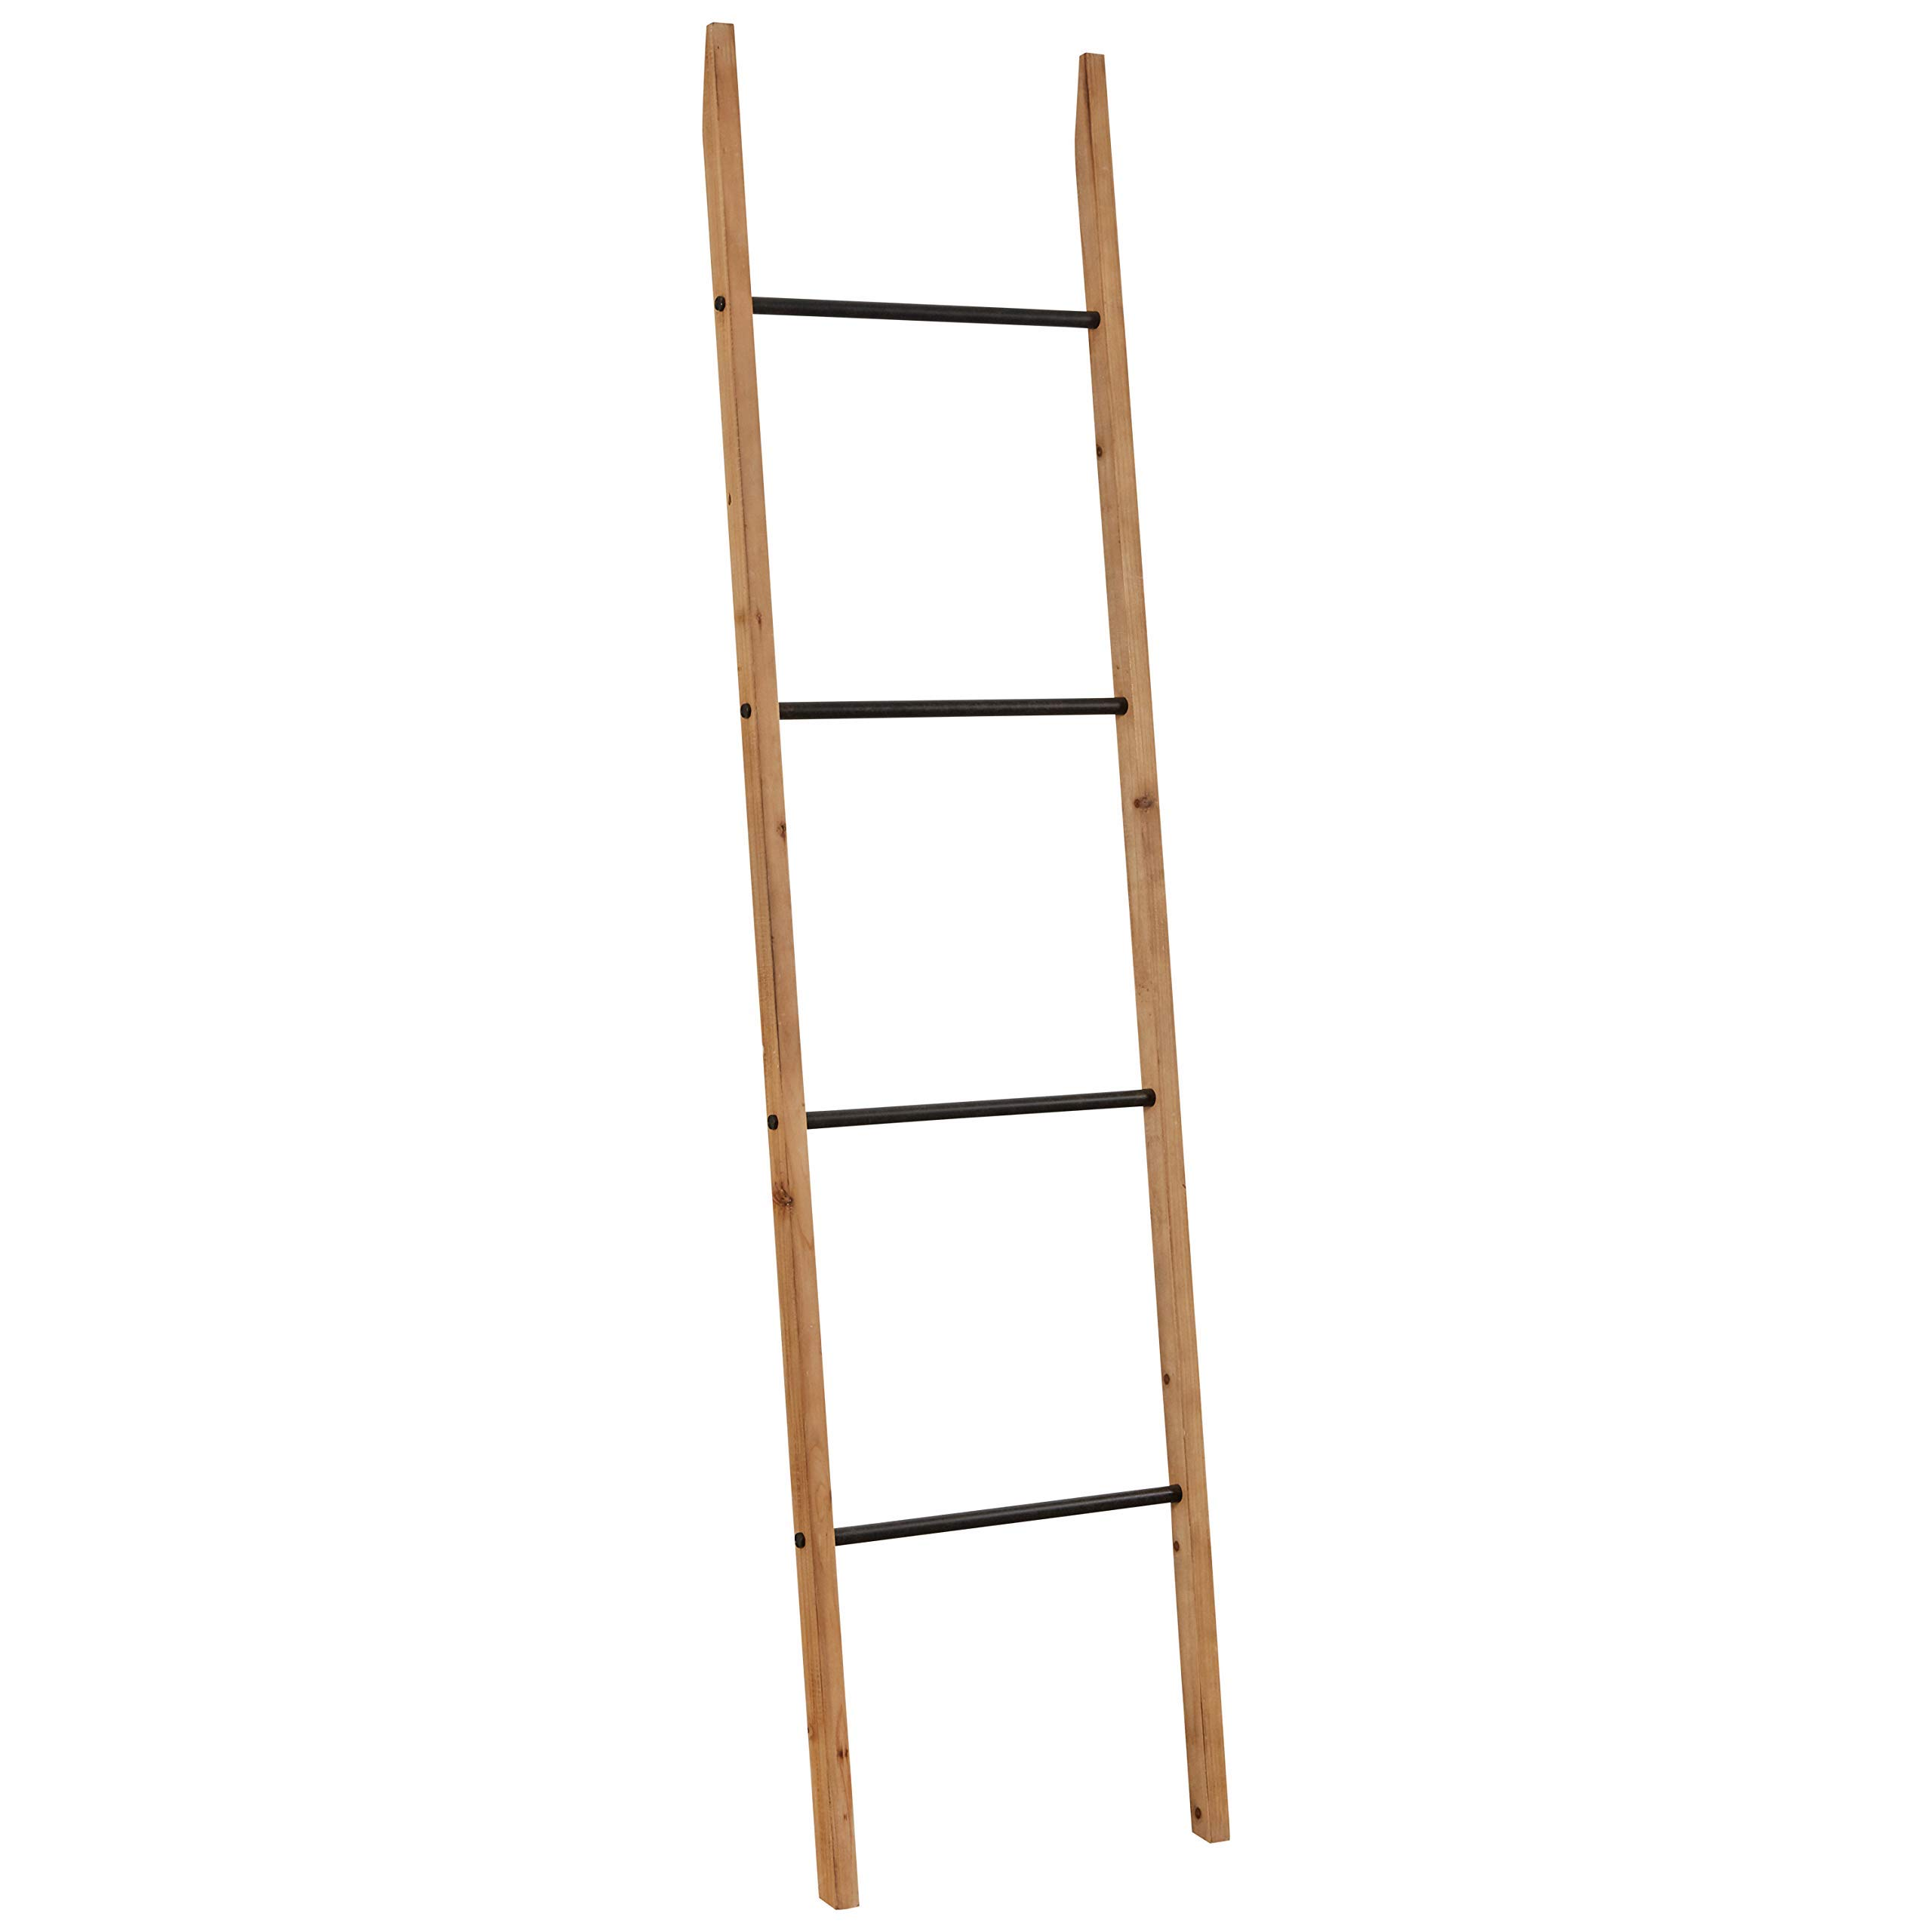 Rivet Contemporary Fir Decorative Blanket Ladder with Iron Rungs - 71.65''H, Black and Natural Wood (Renewed) by Rivet